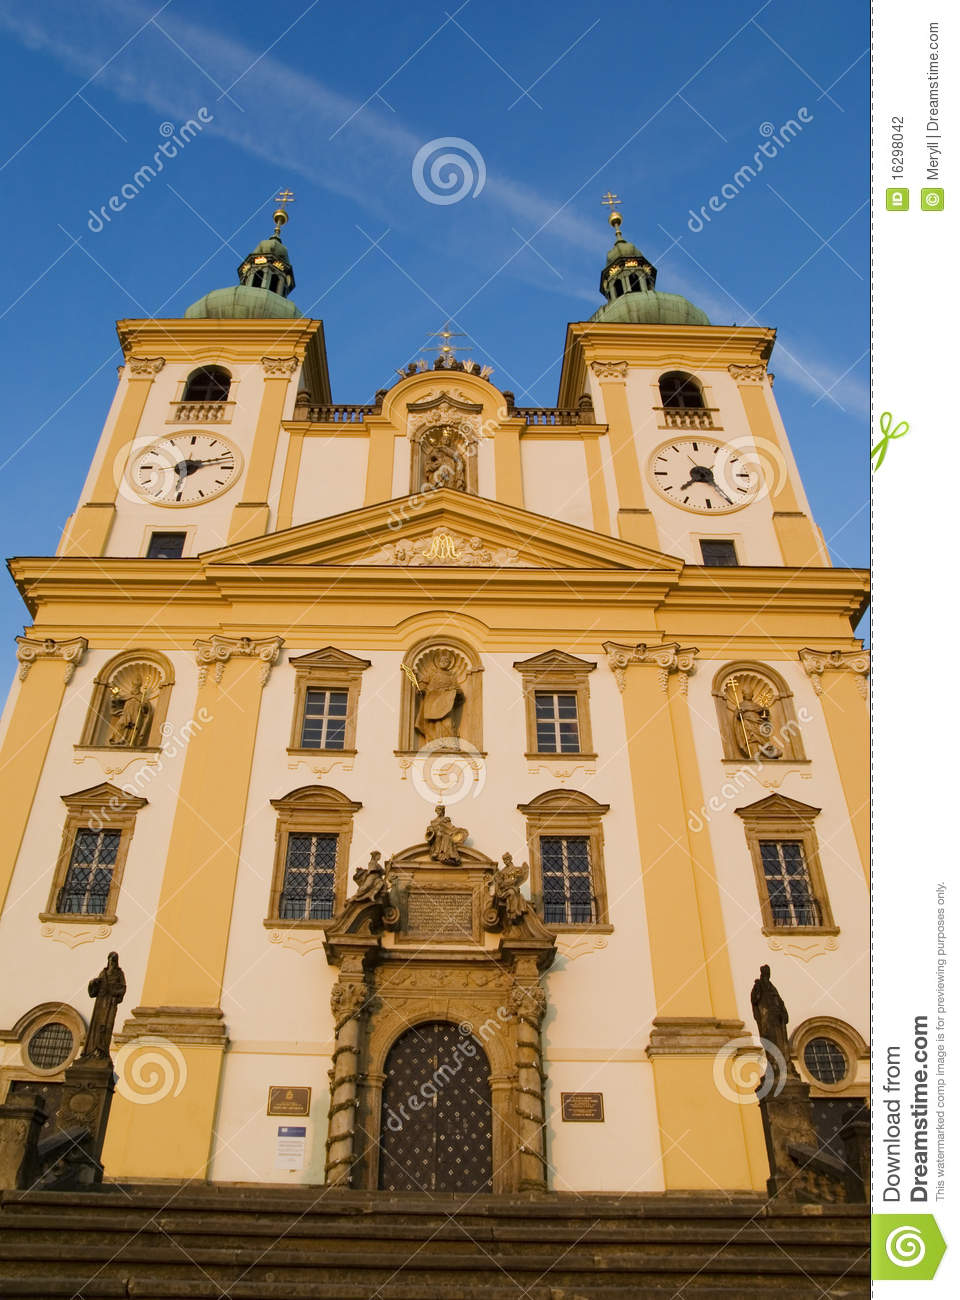 Church baroque architecture czech republic stock for Baroque style church